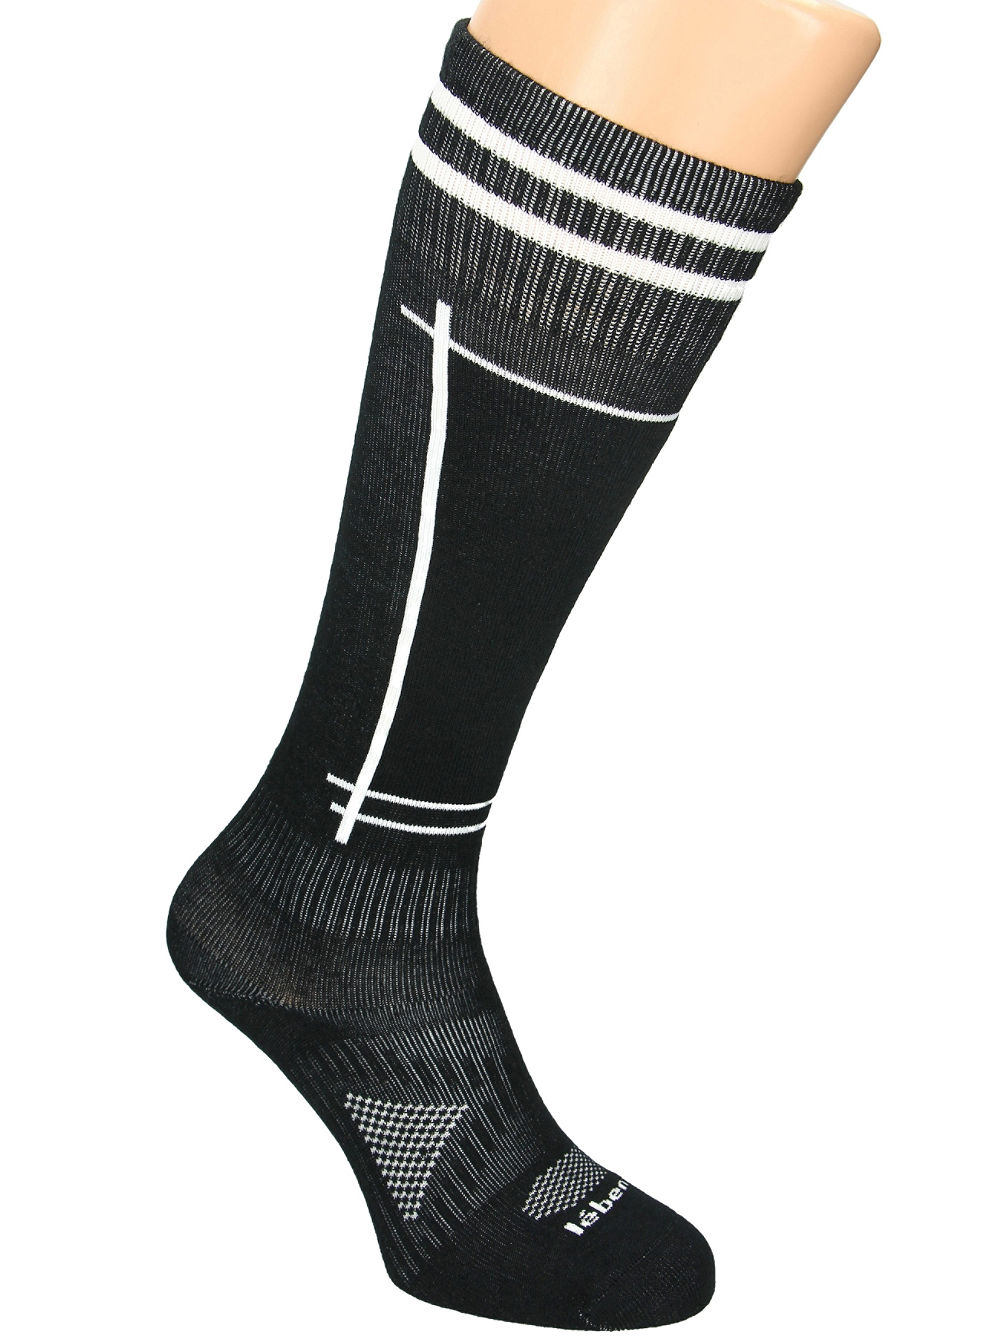 Definitive Ultra Light Socks